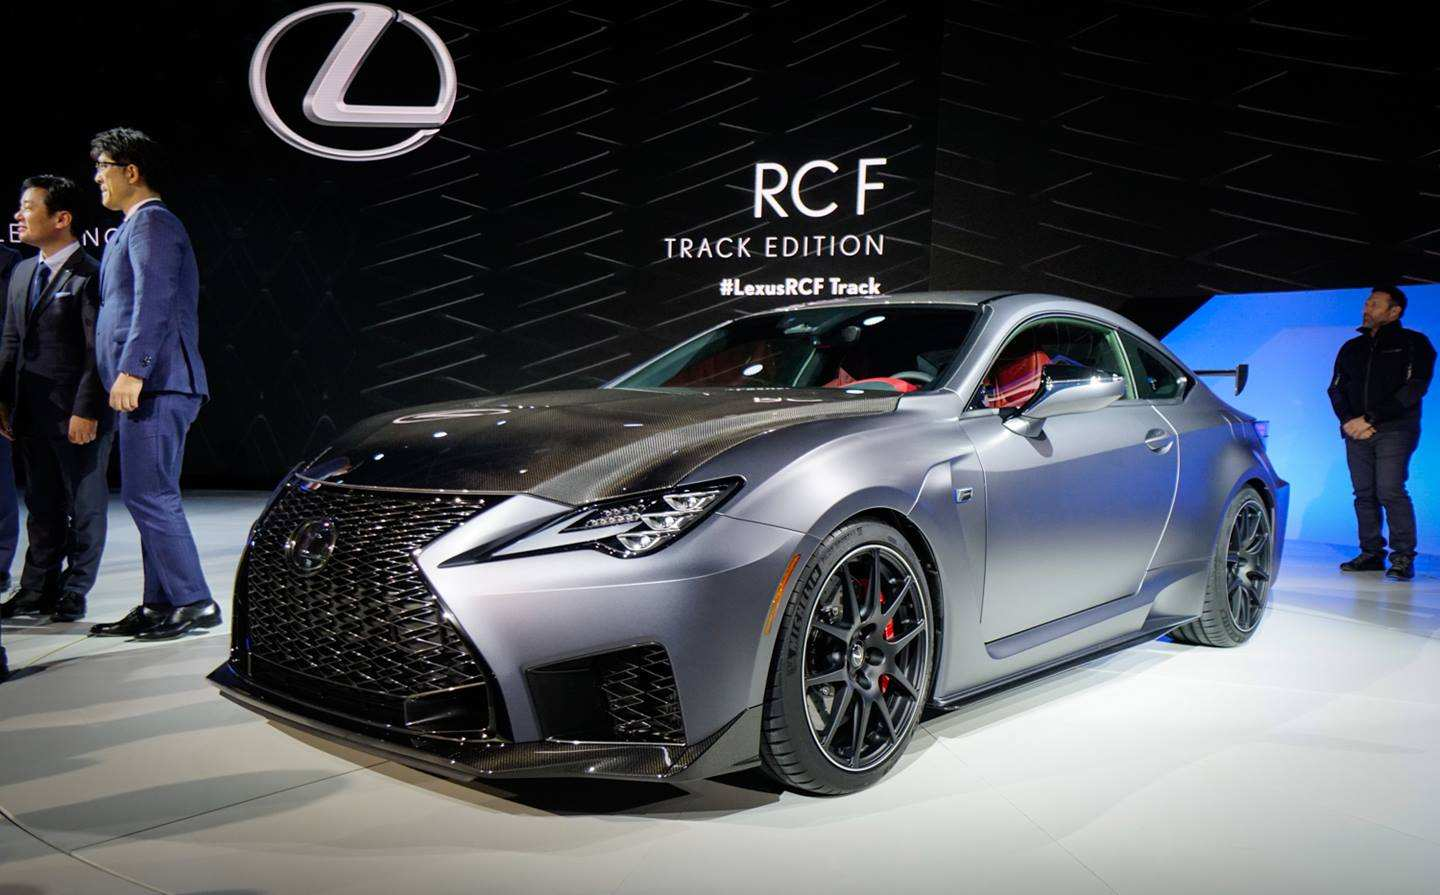 72 All New Lexus Rc F 2020 Price Rumors by Lexus Rc F 2020 Price